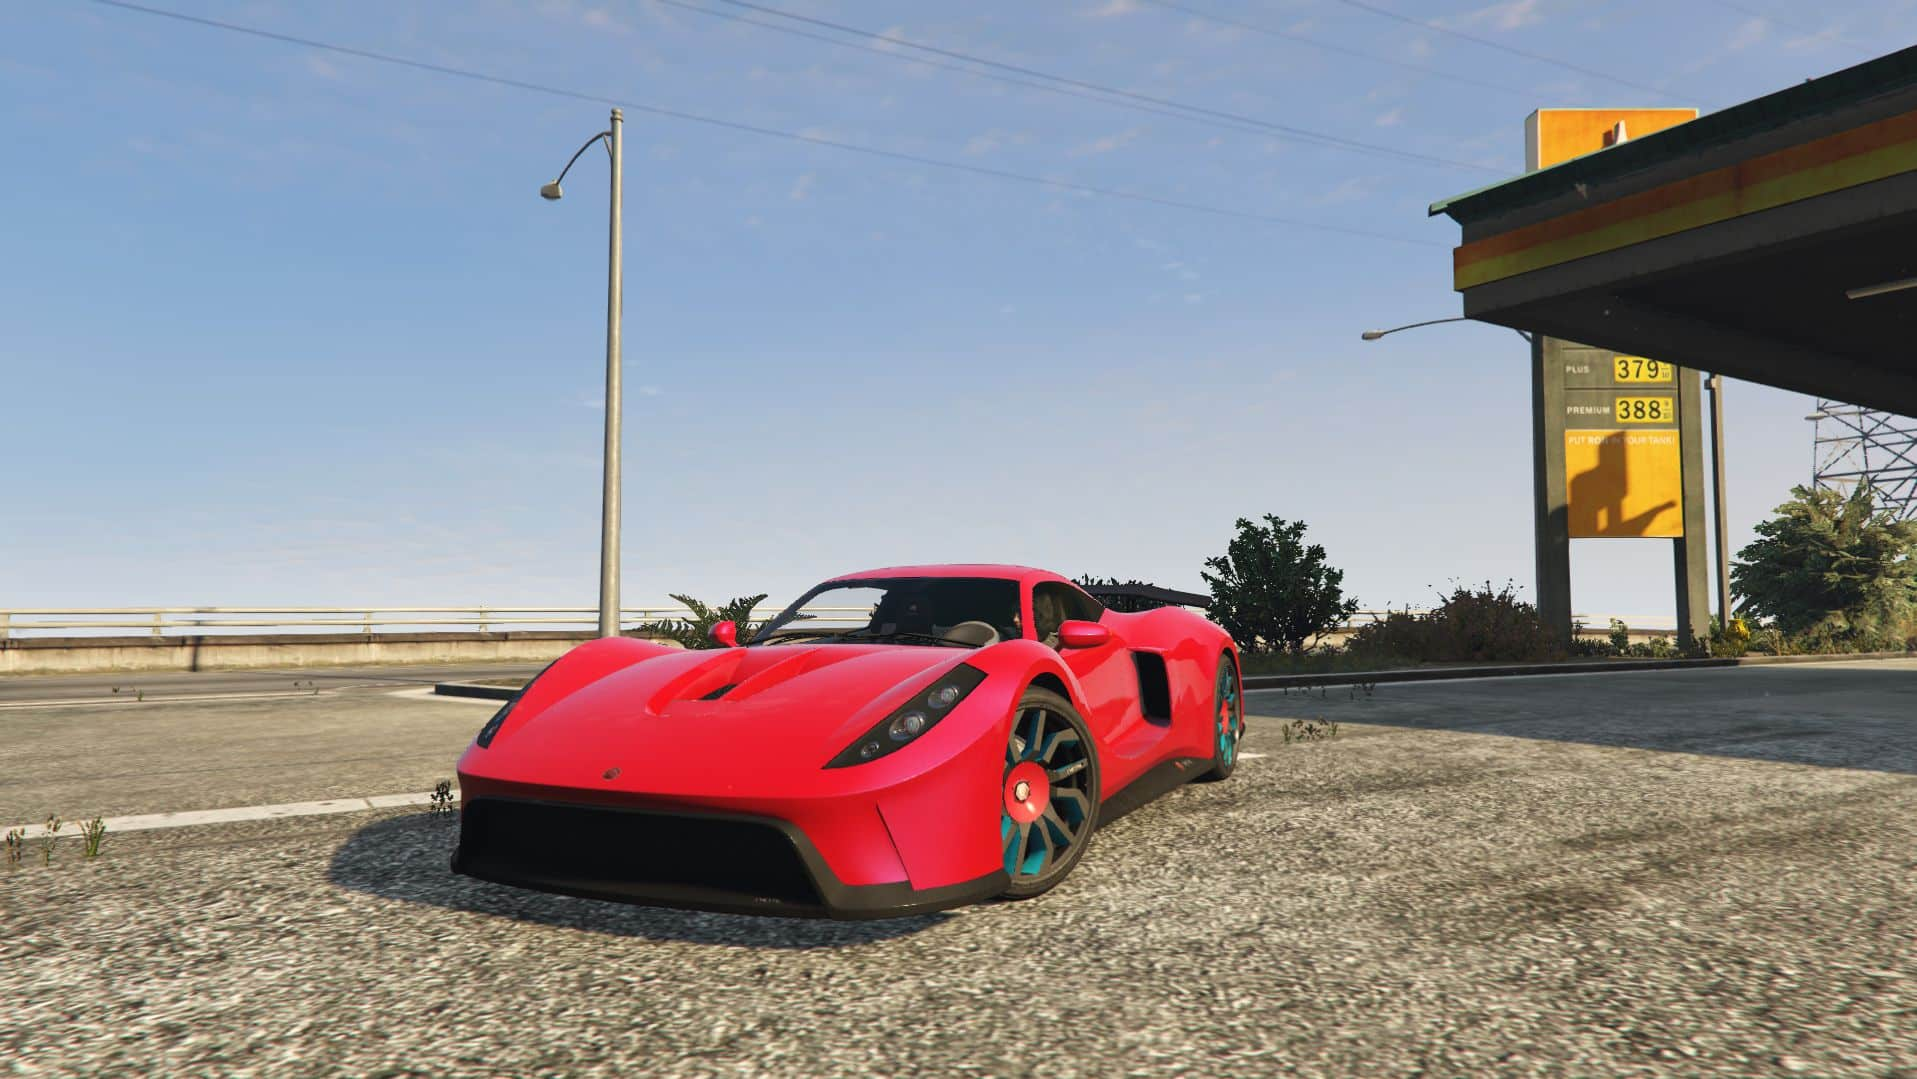 Gta Online The Best Fastest Cars Bikes Planes Boats You Can Get Altar Of Gaming